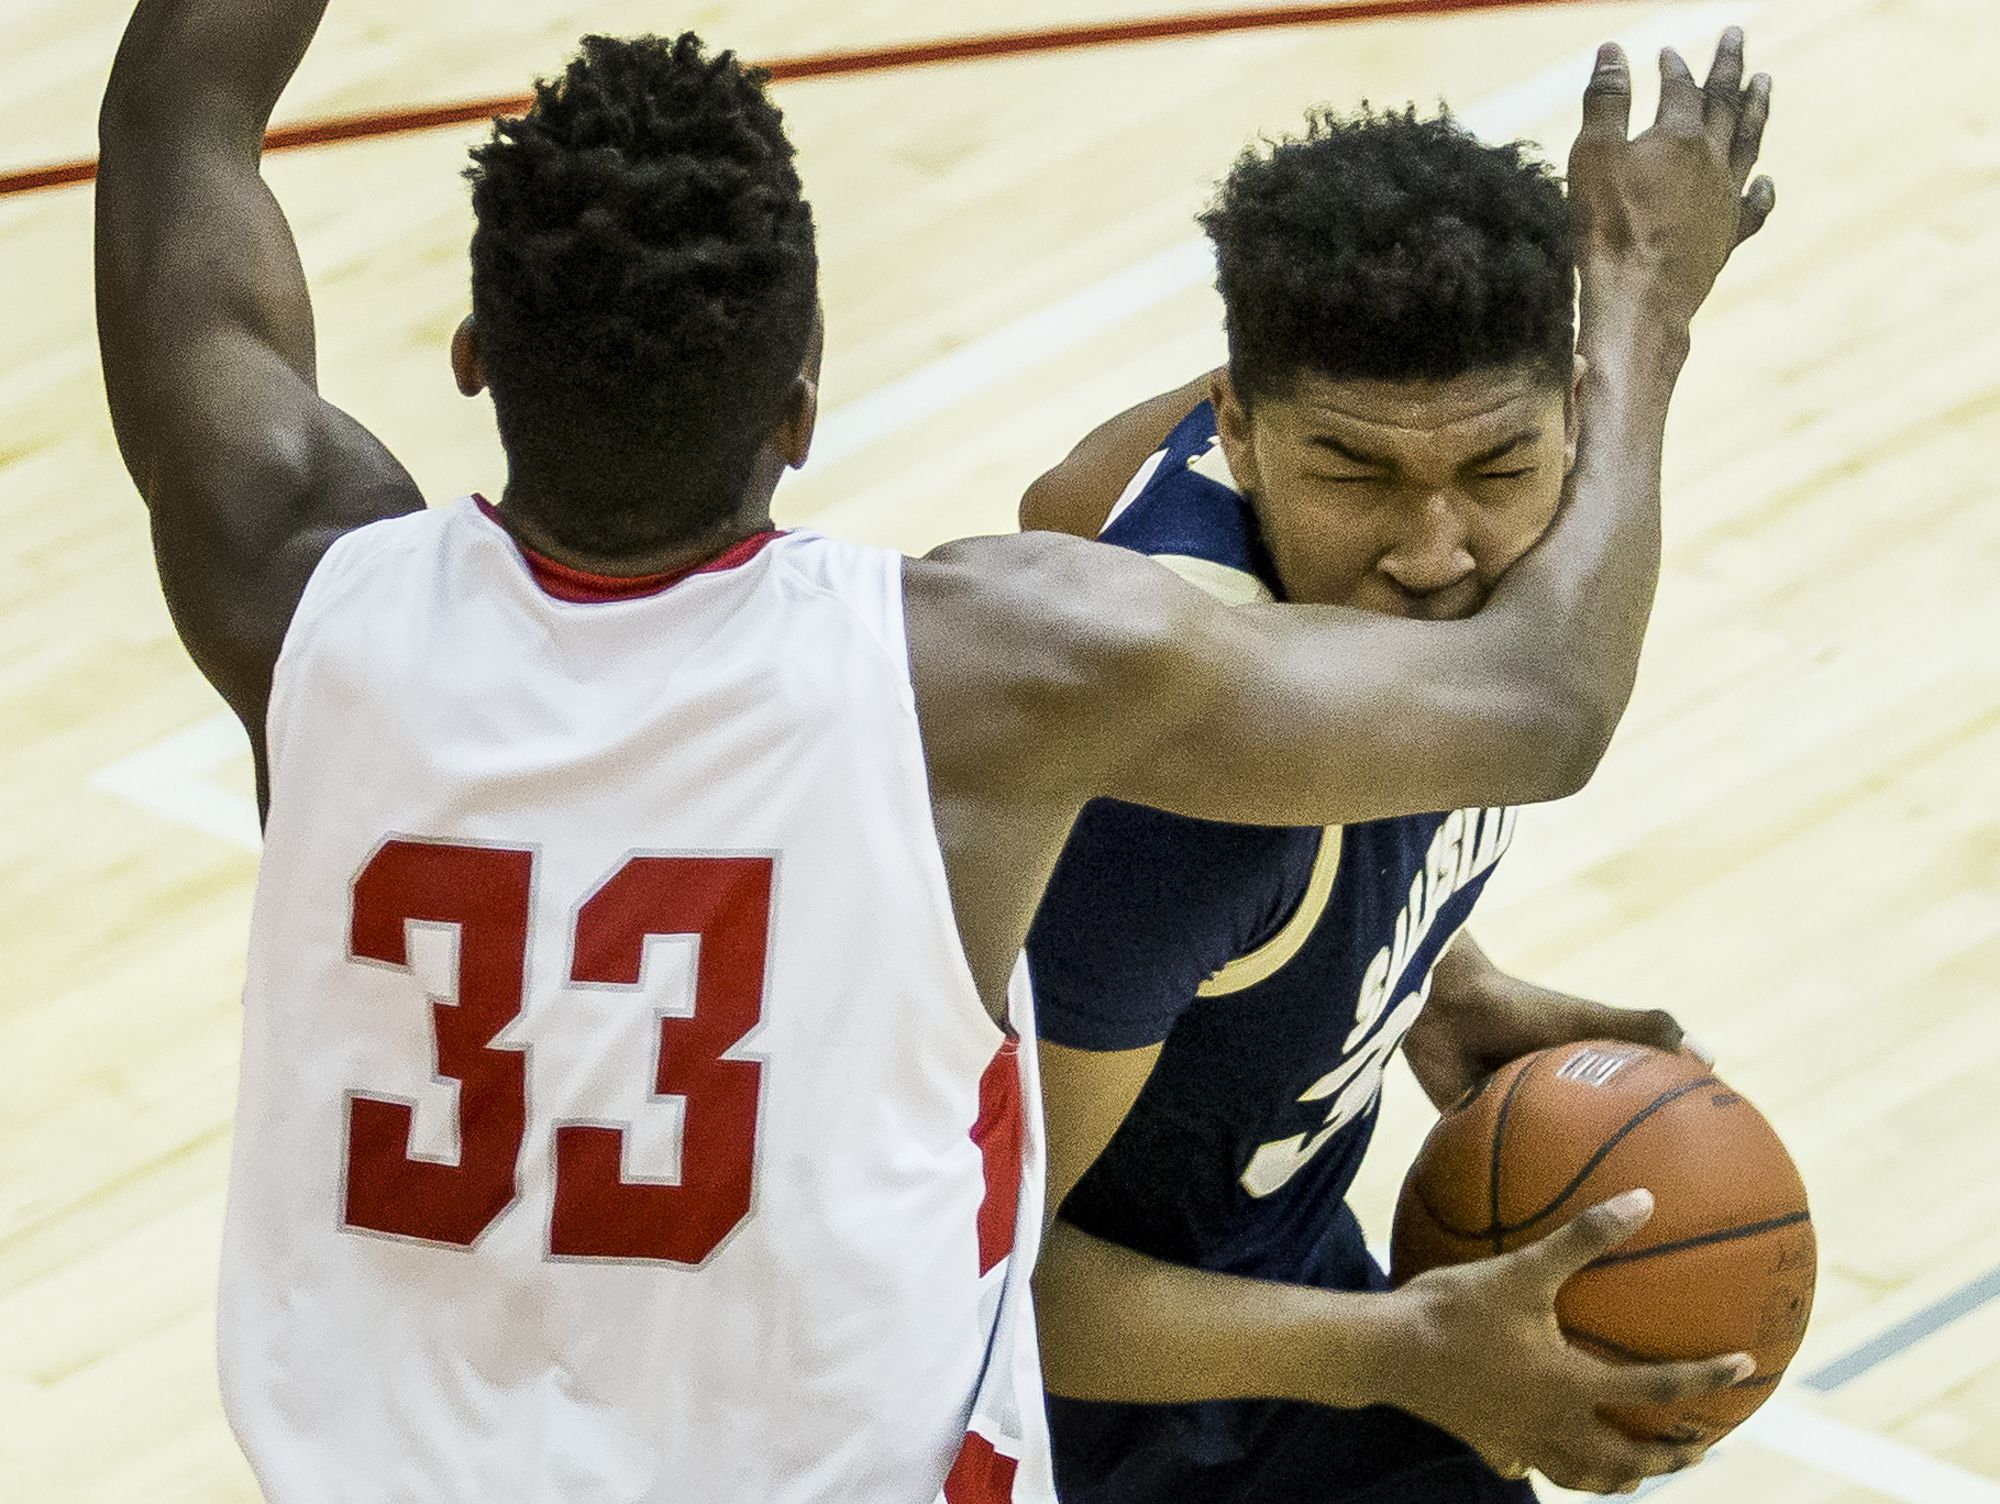 Salesianum's Tariq Ingraham takes a forearm to the face from Smyrna's Azubuike Nwankwo in the first half of Smyrna's 53-40 win over Salesianum at Smyrna High School on Tuesday night.